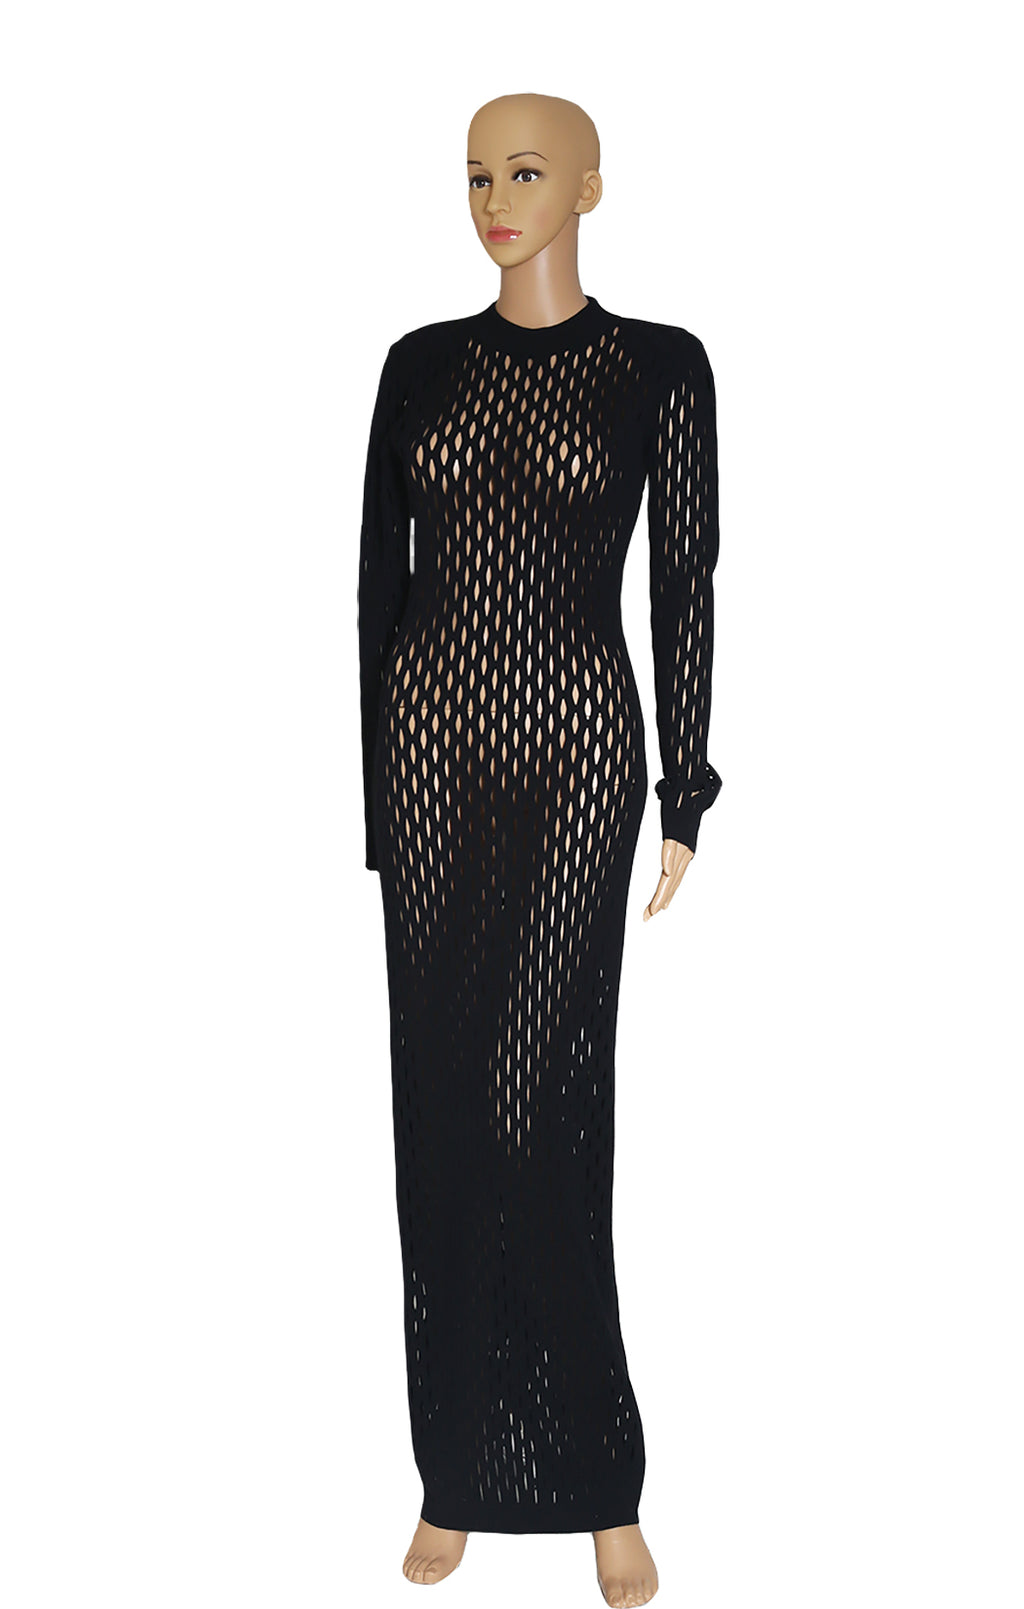 Front view of BALMAIN Long Dress Size: FR 36 (US 4-6)